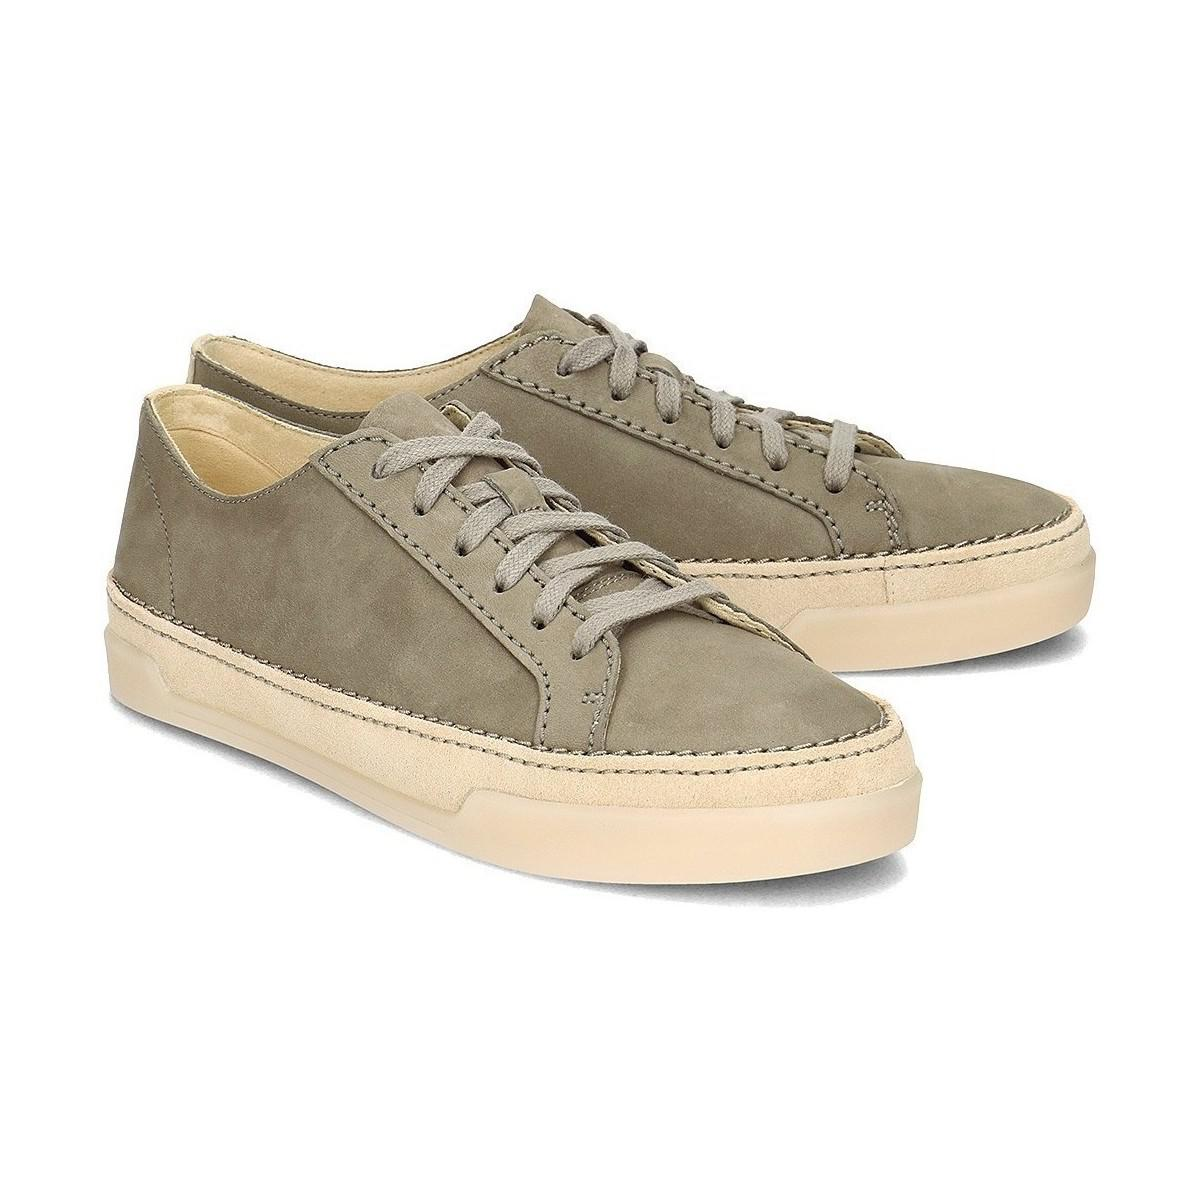 38274f387e6e Clarks Hidi Holly Women s Shoes (trainers) In Beige in Natural - Lyst